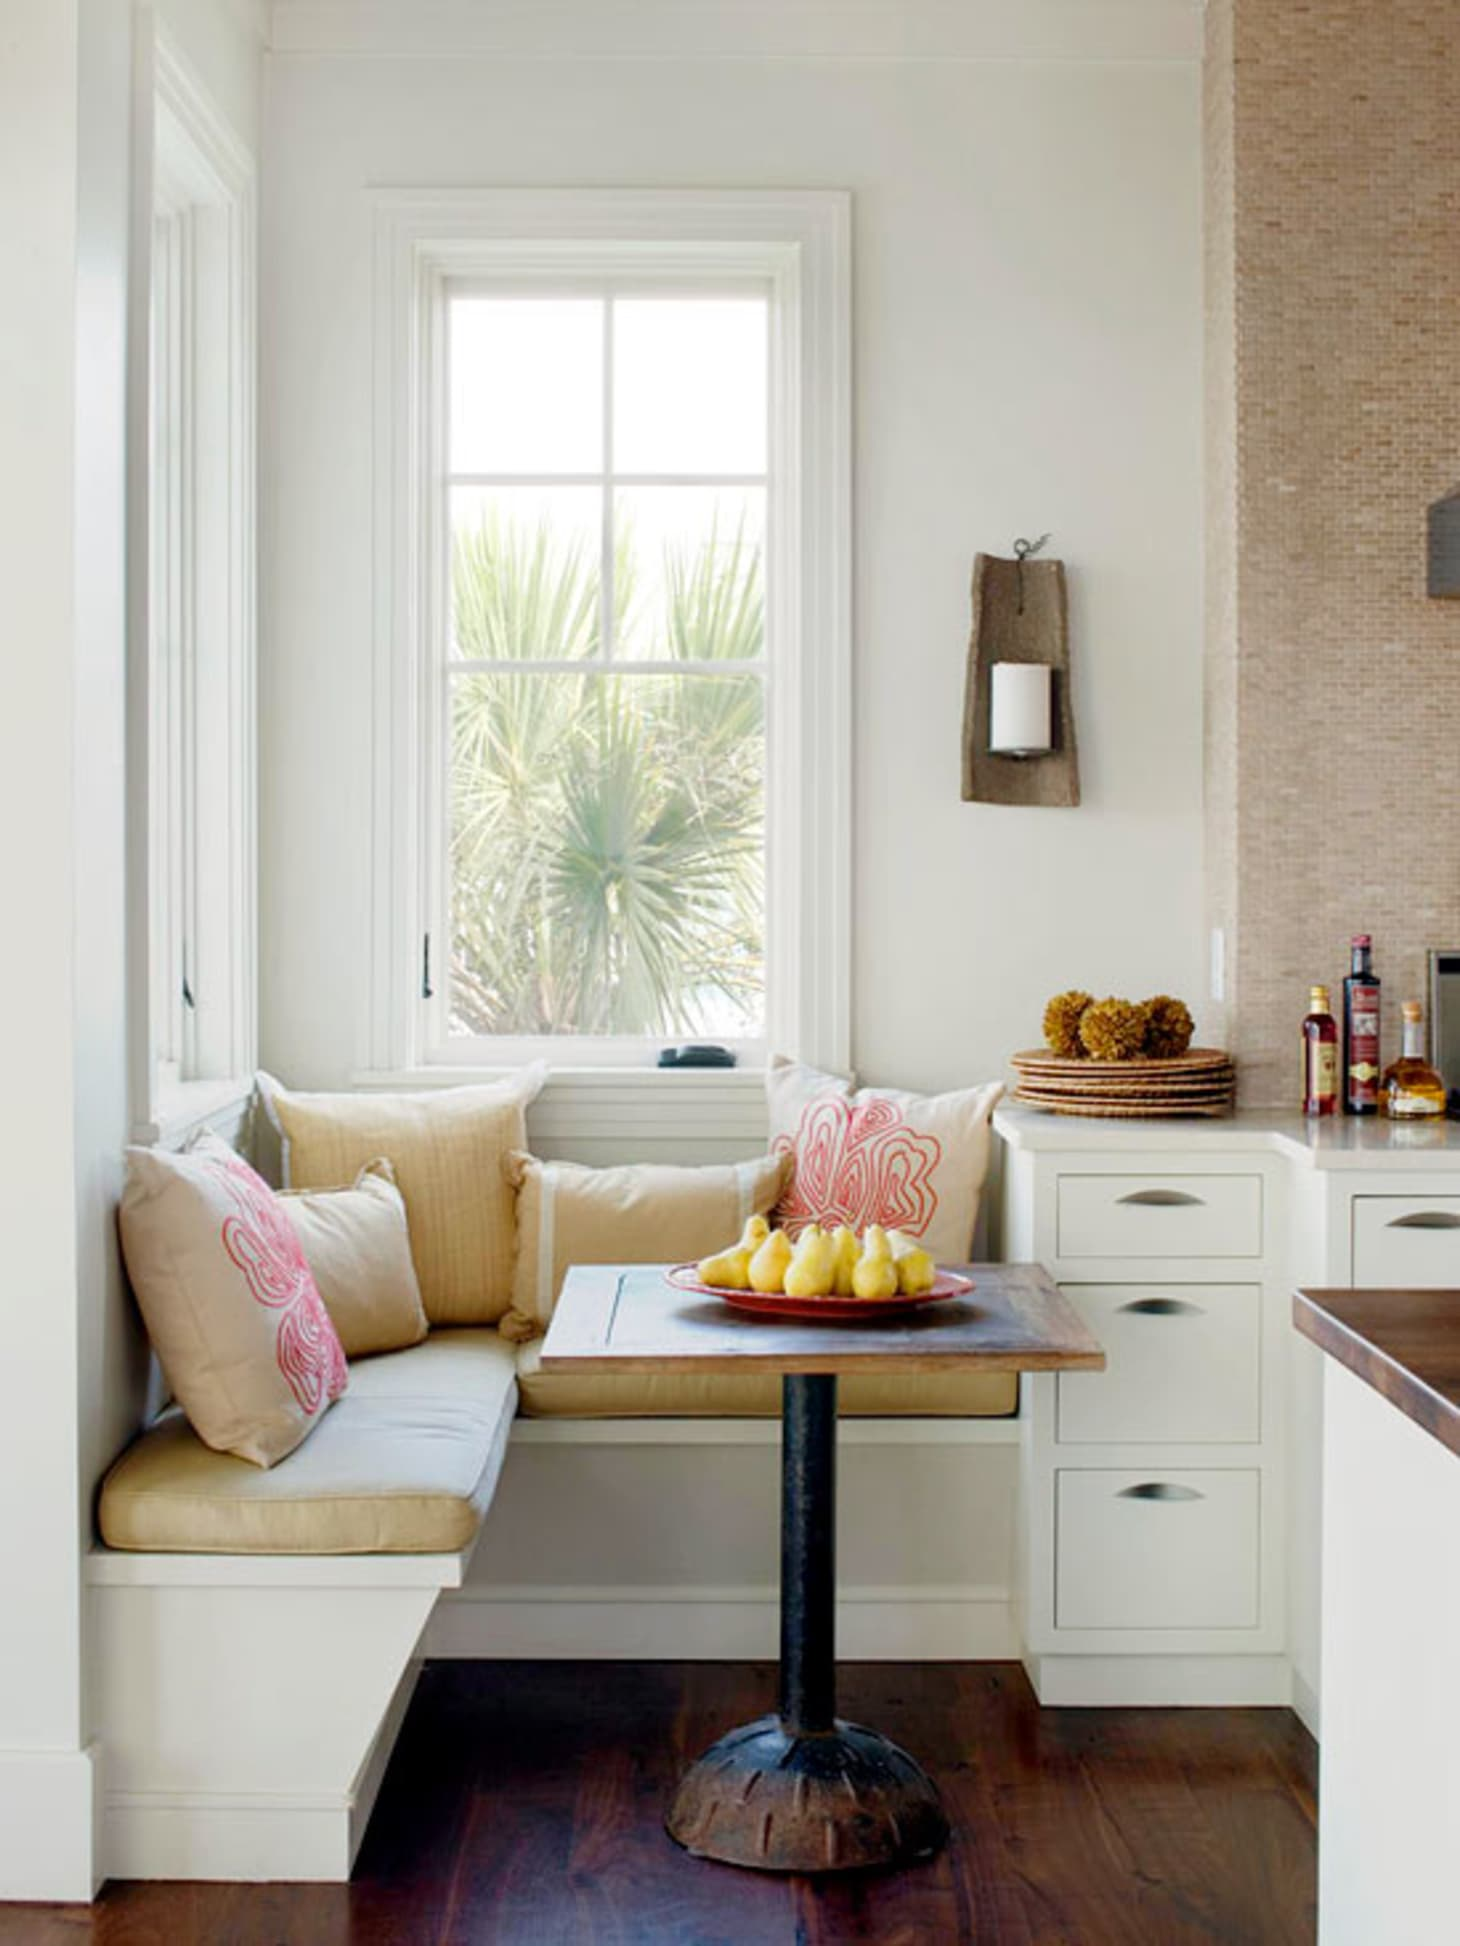 Banquette Built-In Benches Add Smart Kitchen Seating ...